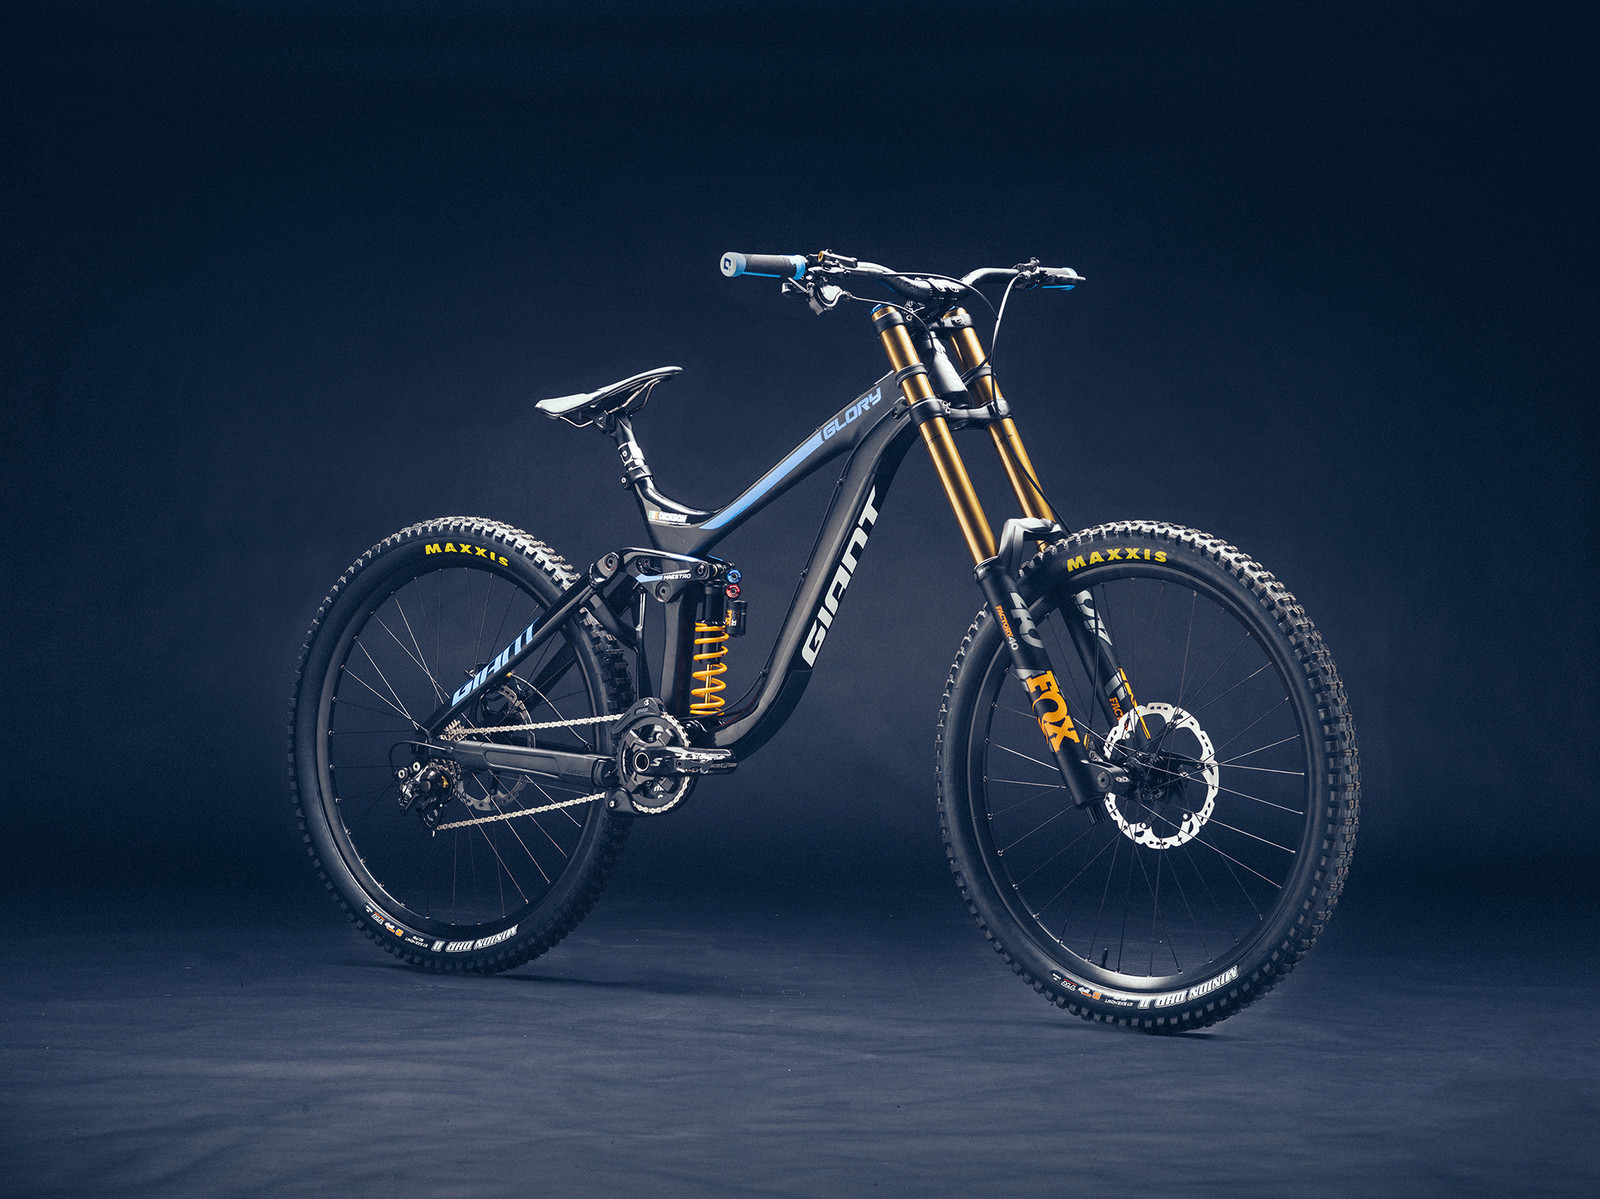 eba4a9c2f0b Giant Factory Expands with New Riders and Sponsors for 2019 ...